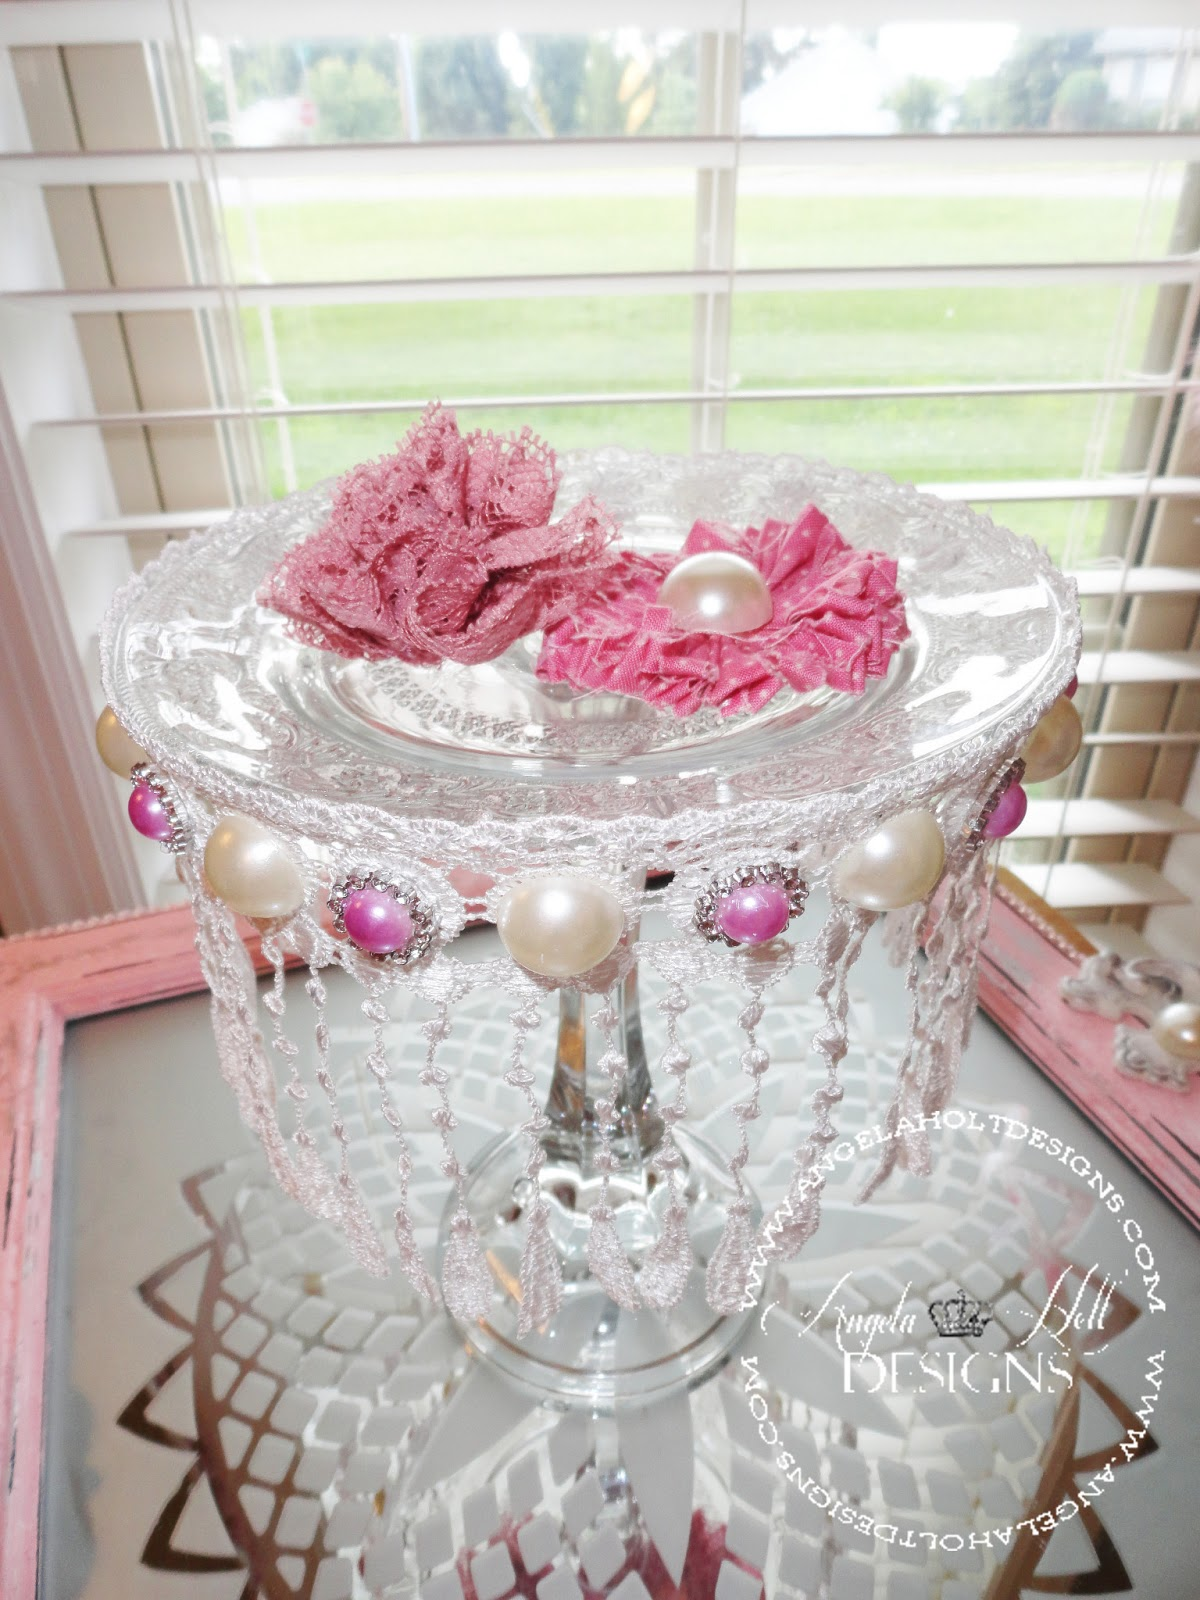 Angela Holt Designs Simple Shabby Chic Style Project featuring